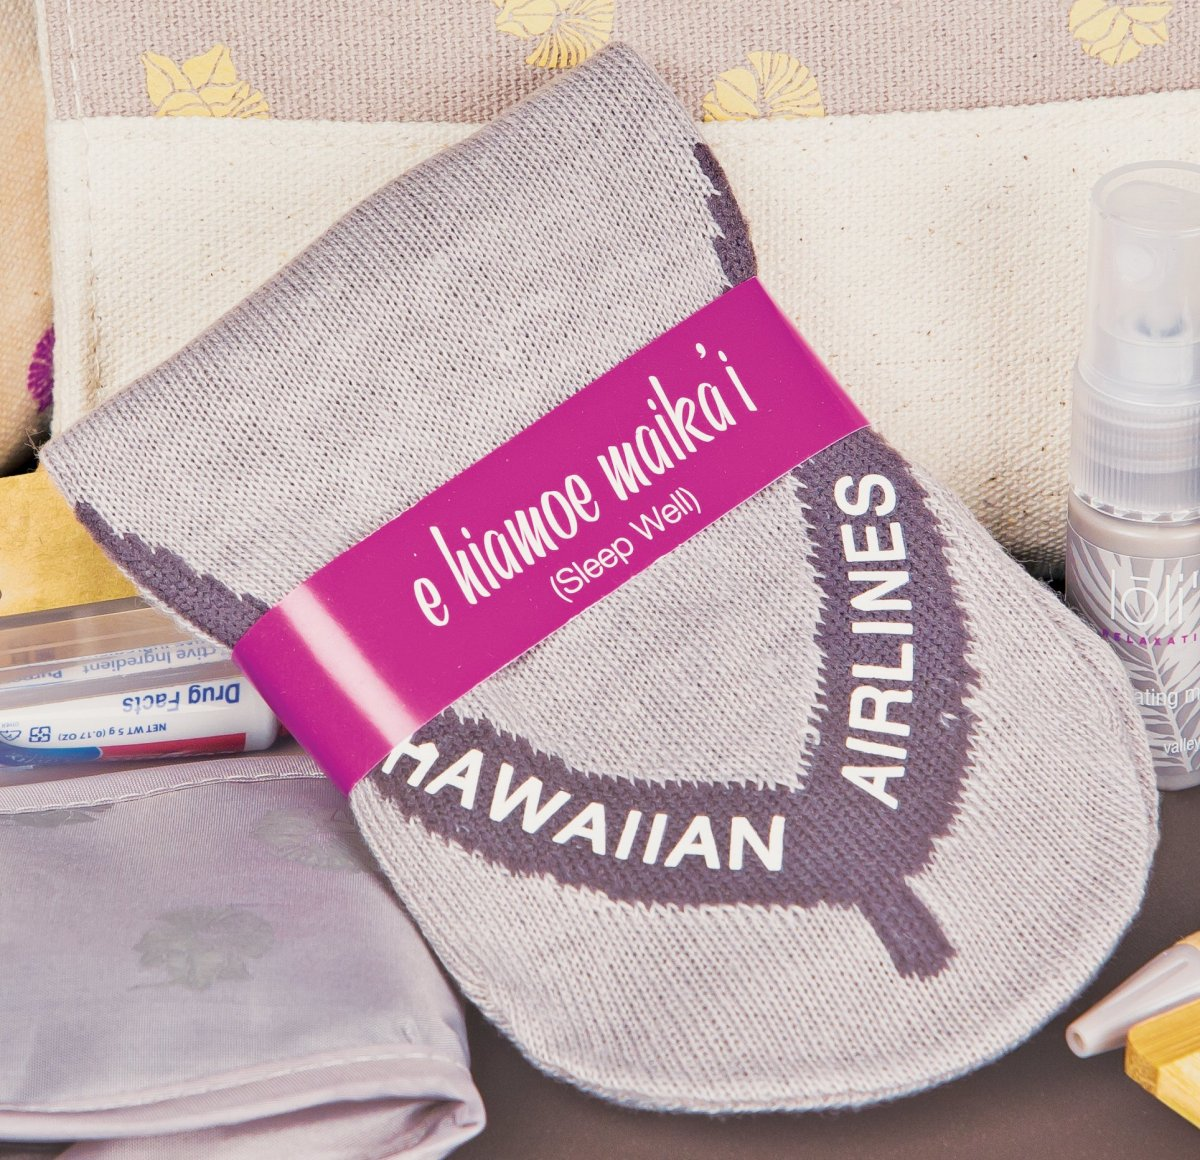 Flipping Out Over Hawaiian Airlines' New Premium Flip-Flop Flight Socks, and the Rest of the Kit